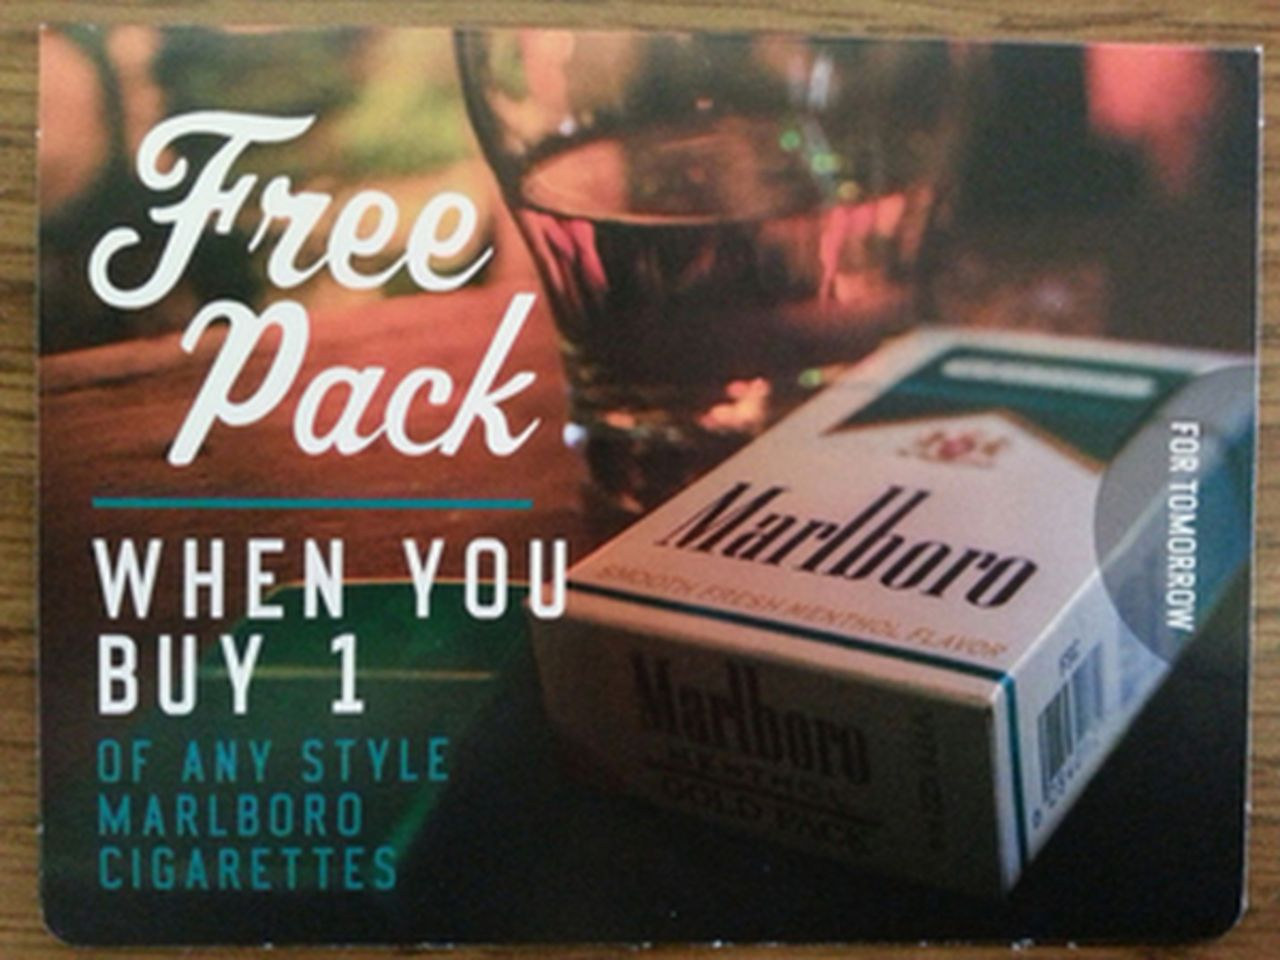 Where can i buy cheap cigarettes Marlboro in stores UK